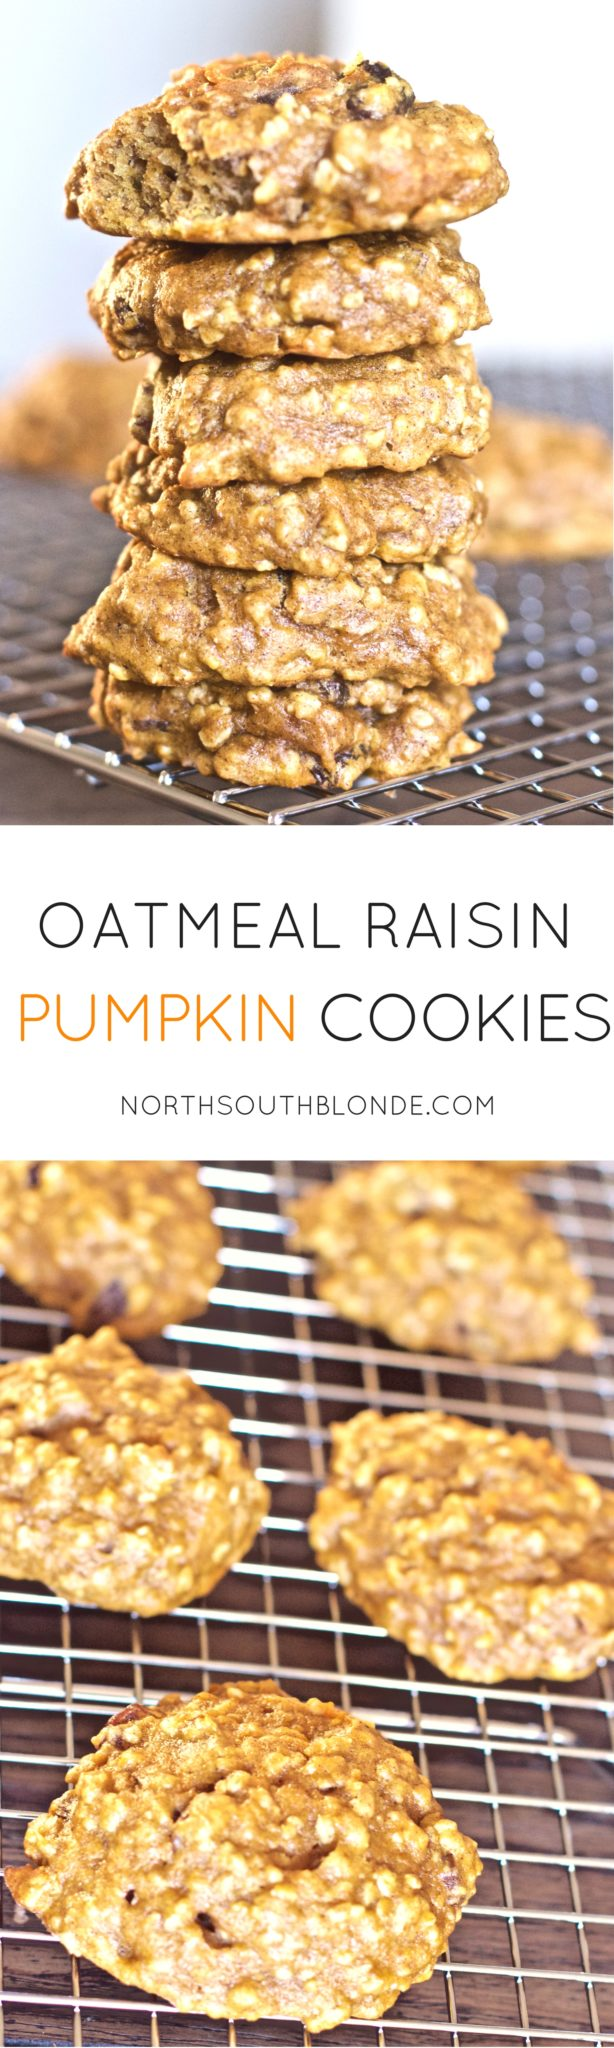 Oatmeal Raisin Pumpkin Cookies (Gluten-Free, Paleo, & Toddler Friendly)